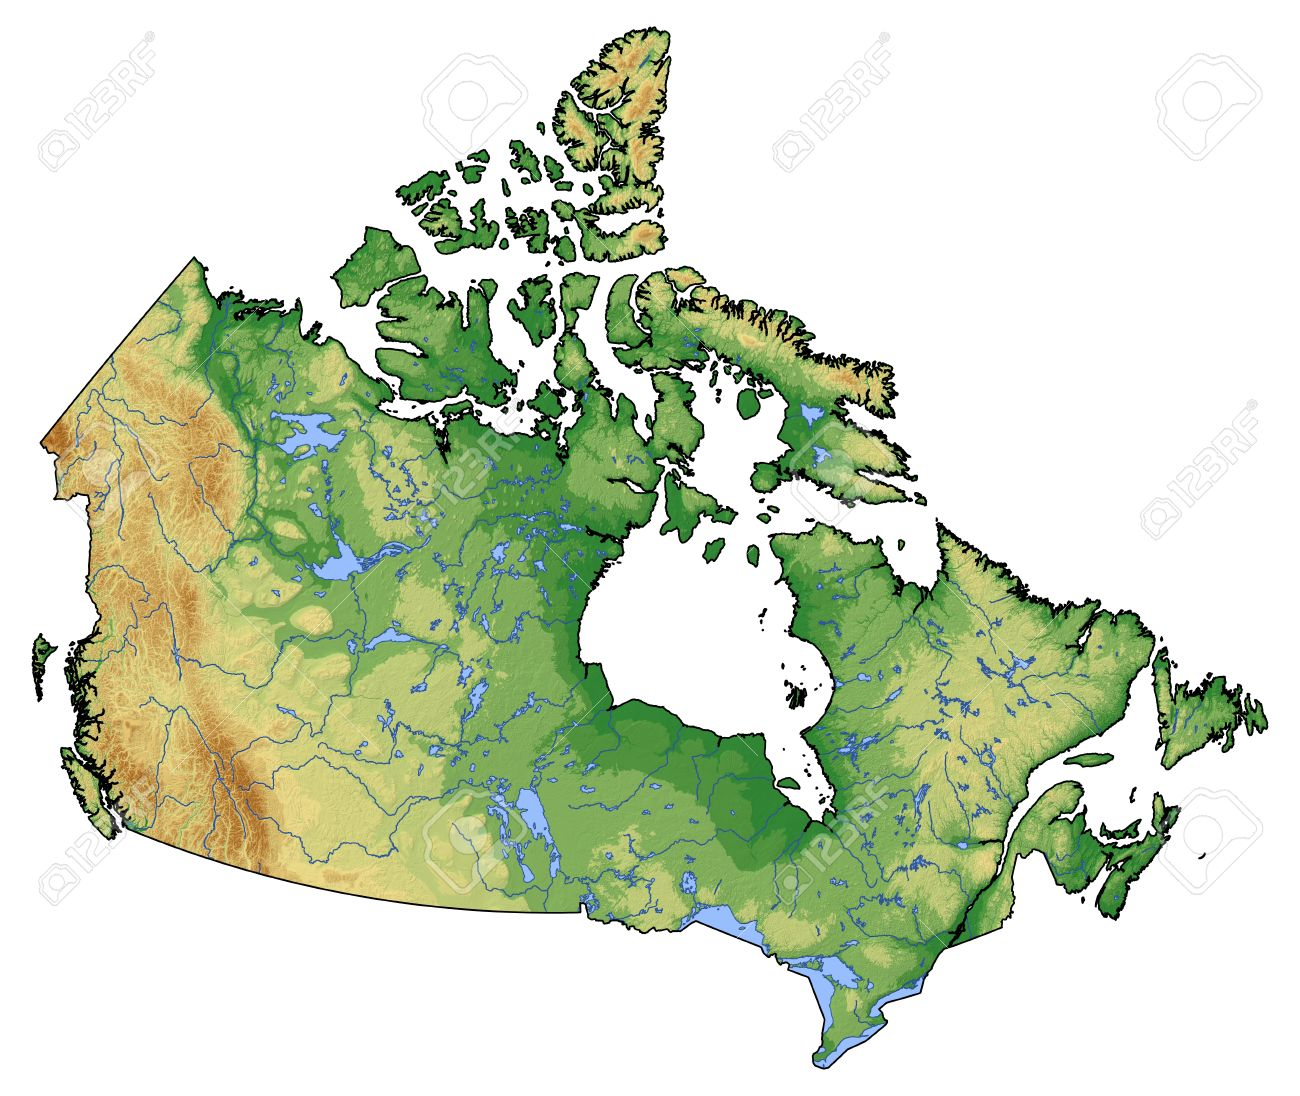 Canada Relief Map Relief Map Of Canada With Shaded Relief. Stock Photo, Picture And